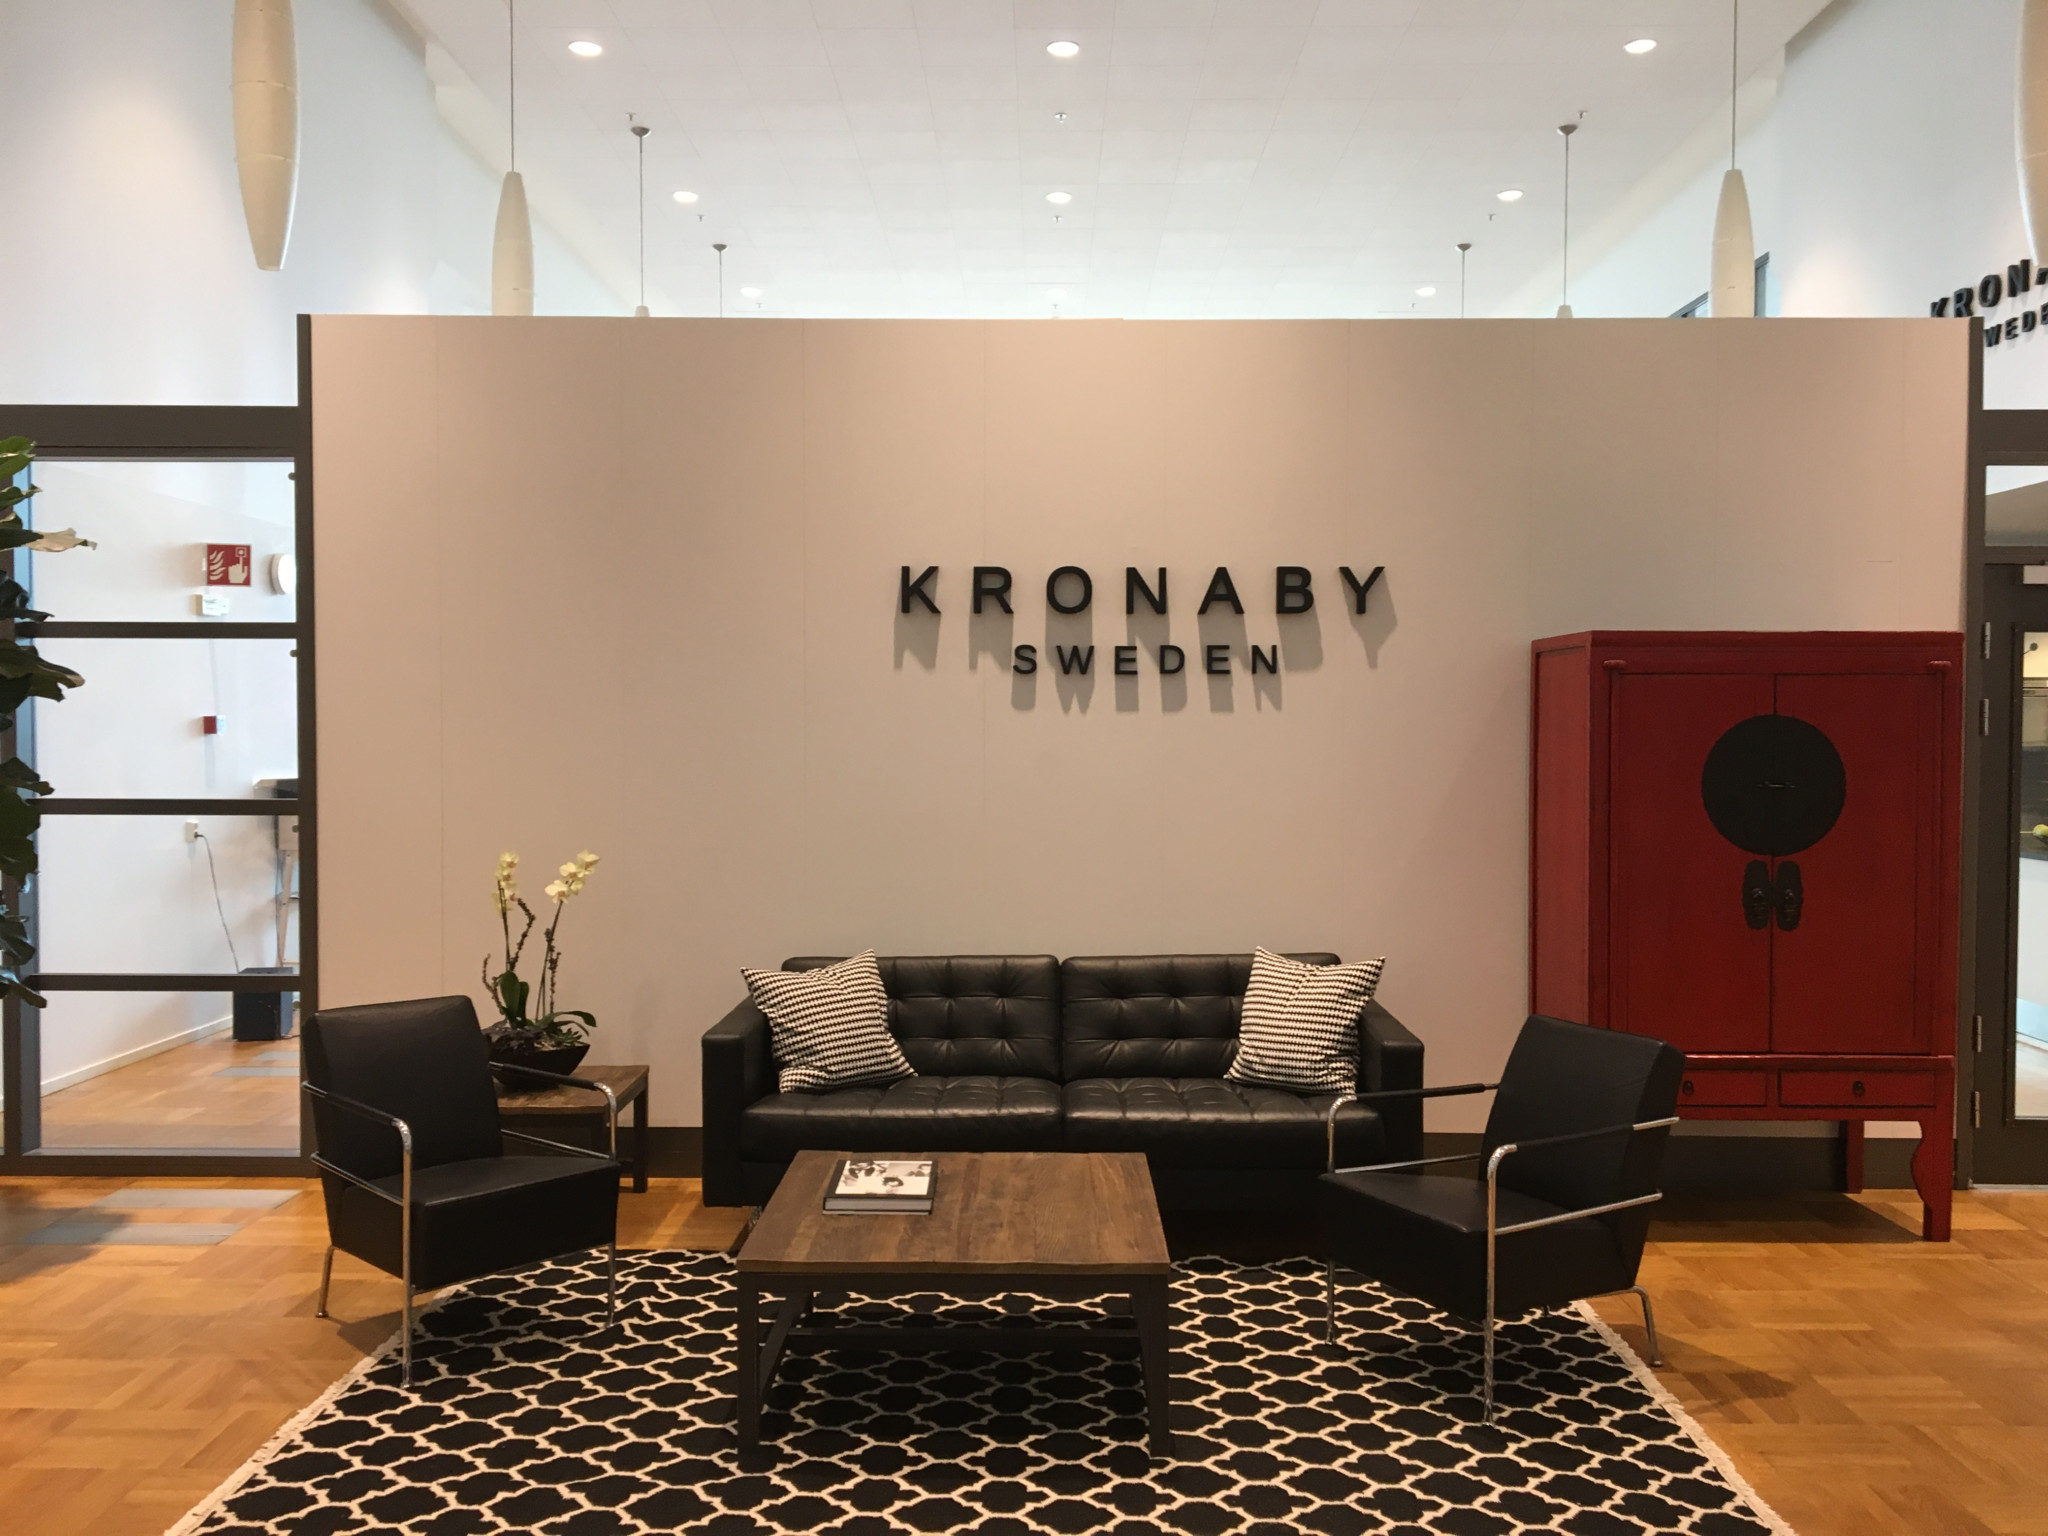 Kronaby is located in a building that previously housed a submarine maker.